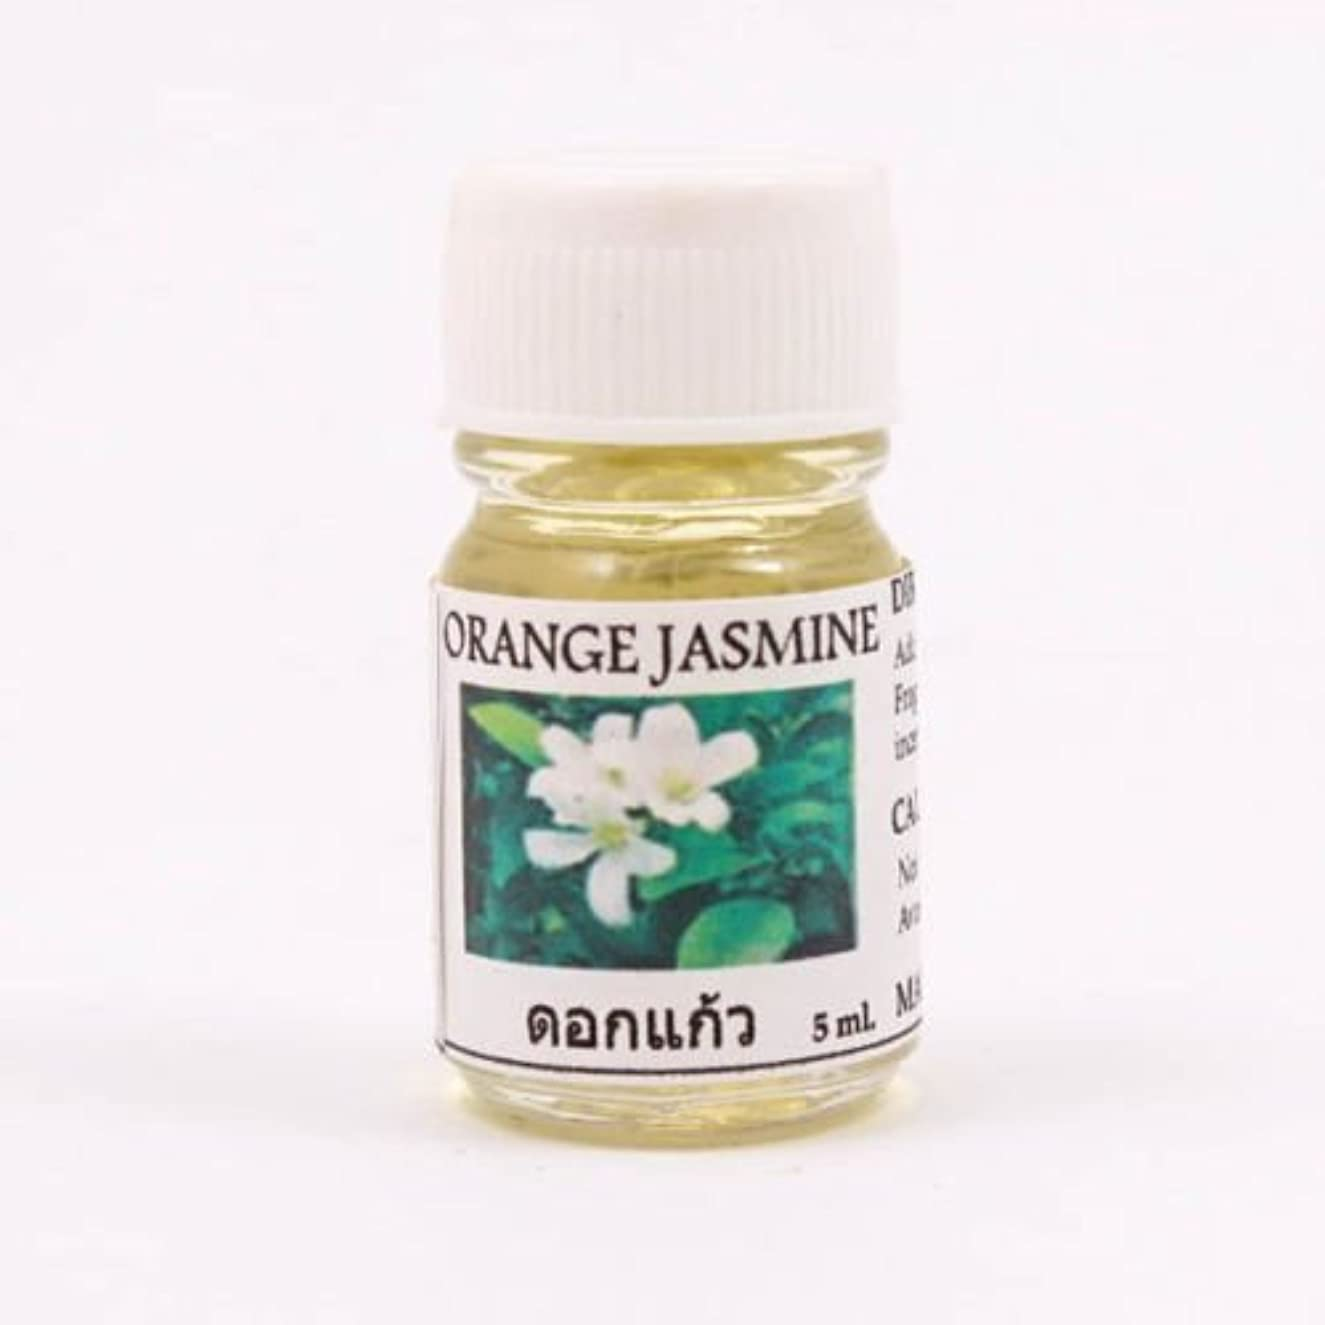 グラム心配アイロニー6X Orange Jasmine Aroma Fragrance Essential Oil 5ML. (cc) Diffuser Burner